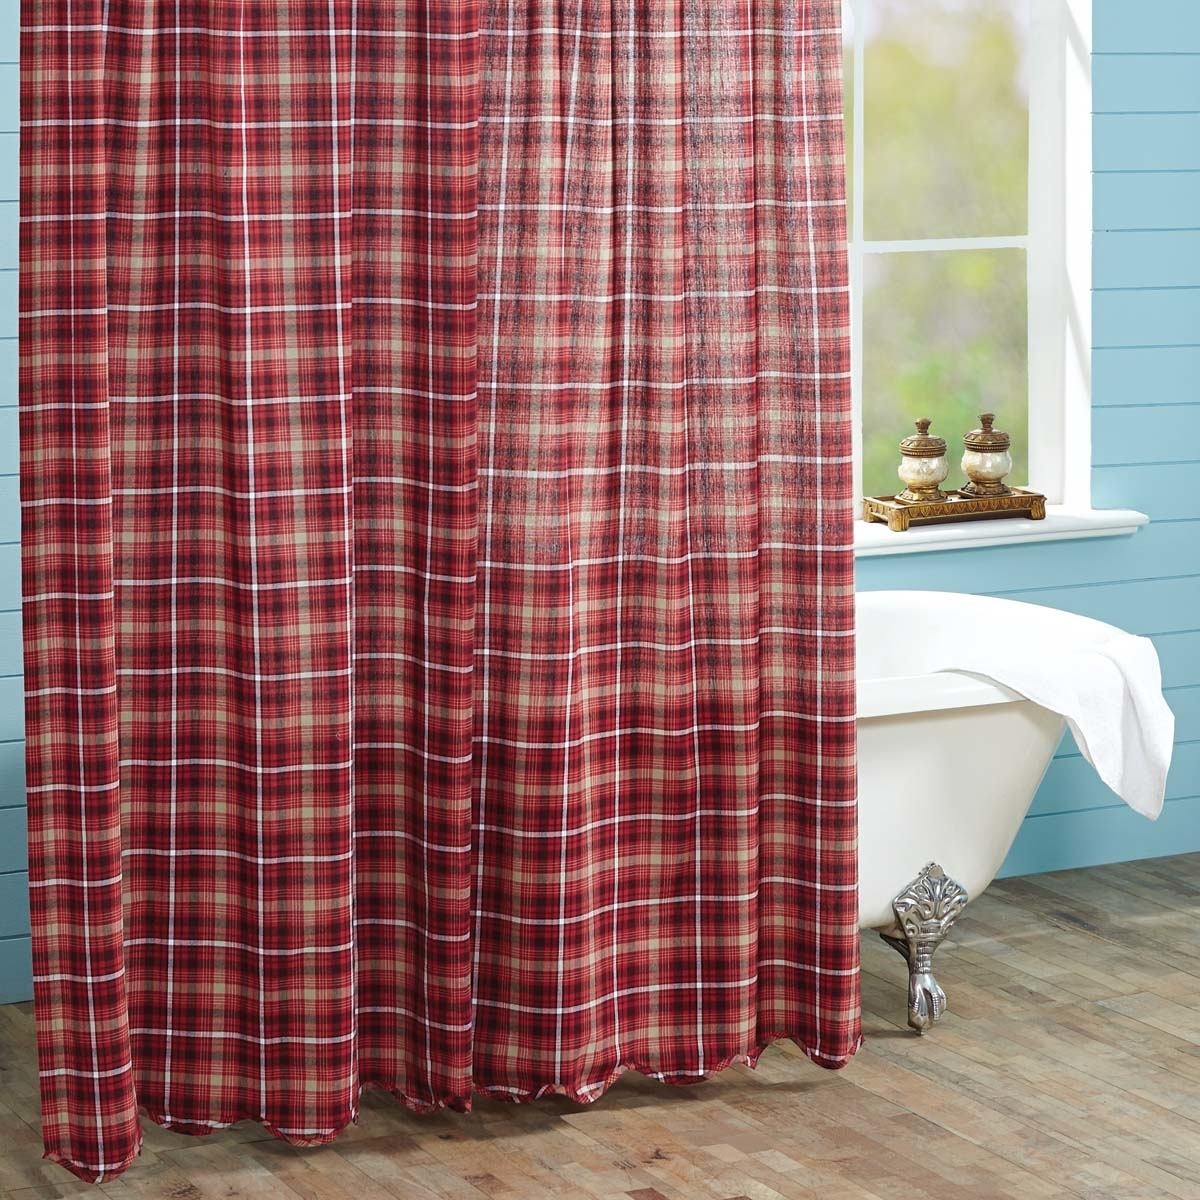 Rustic & Lodge Bath Braxton Scalloped Red Shower Curtain 5b17f2db2a00e41bef2faa5b